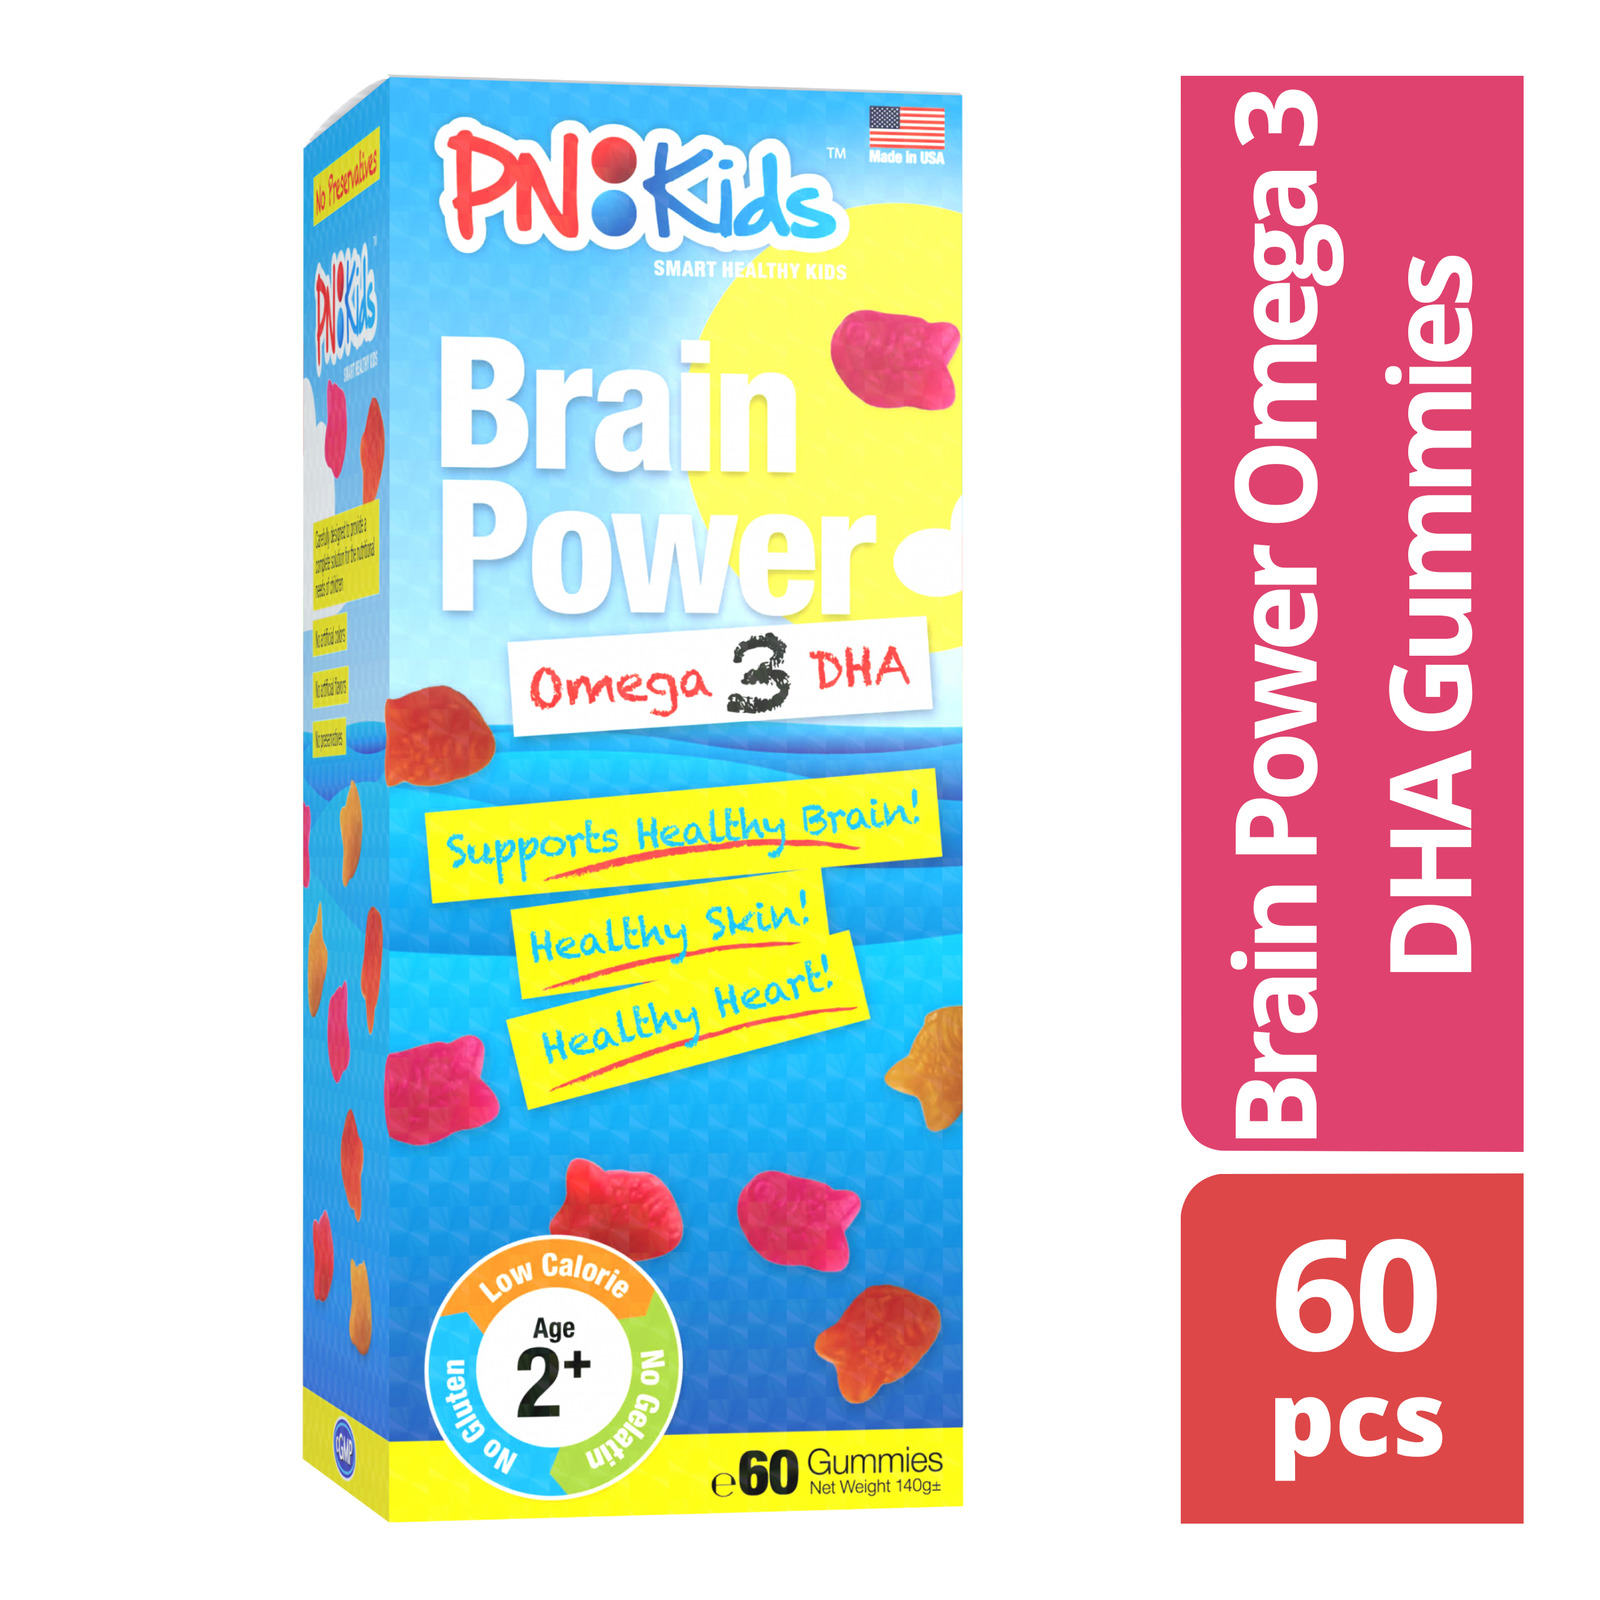 Principle Nutrition Kids Brain Power Omega 3 DHA, 60 Gummies